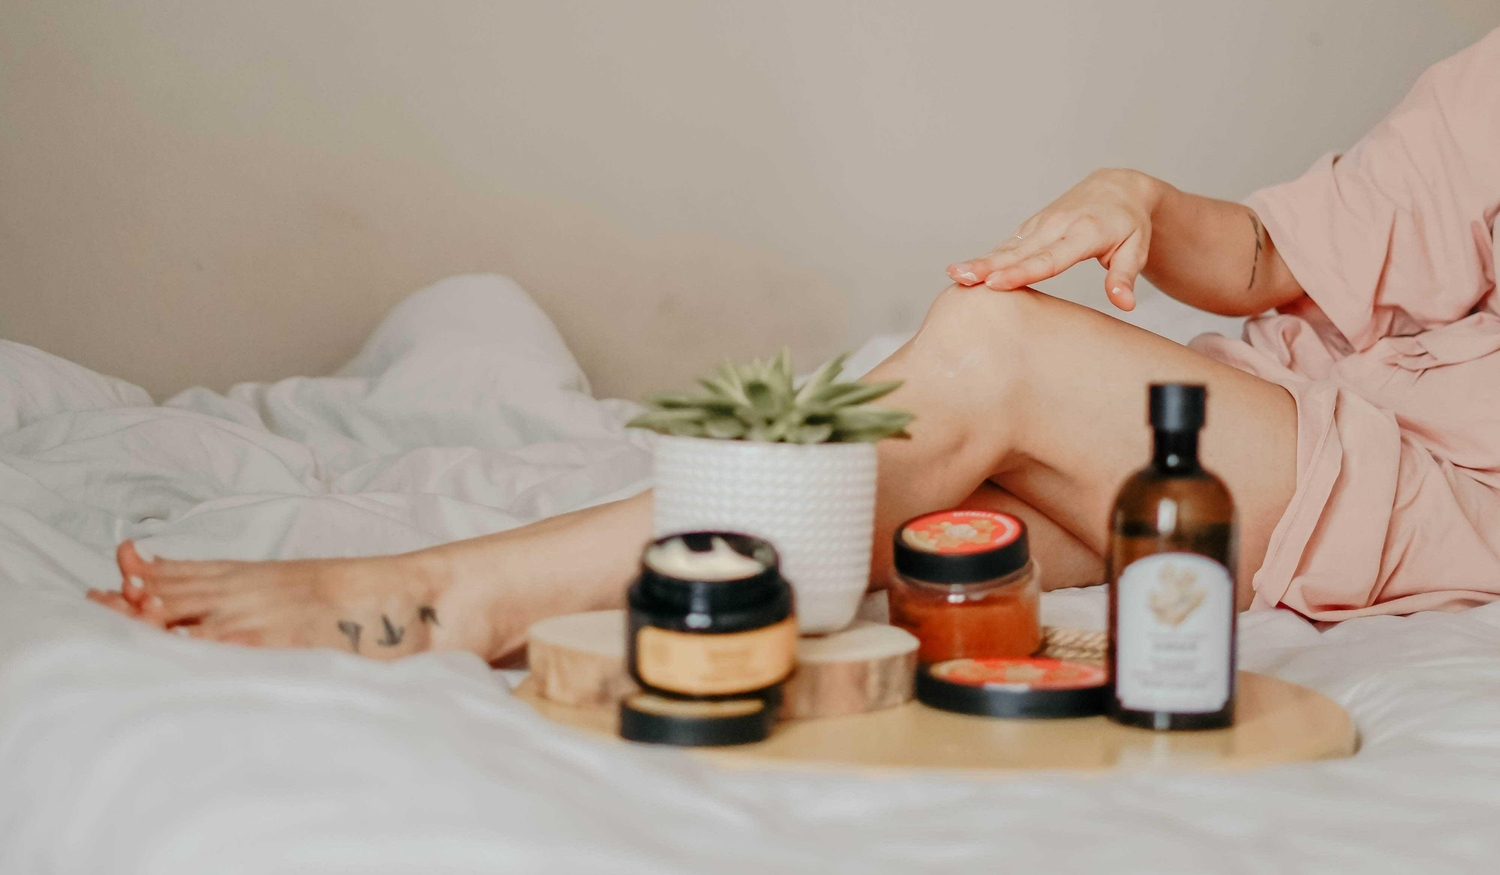 Woman with holistic beauty products lounging on a bed with only leg visable